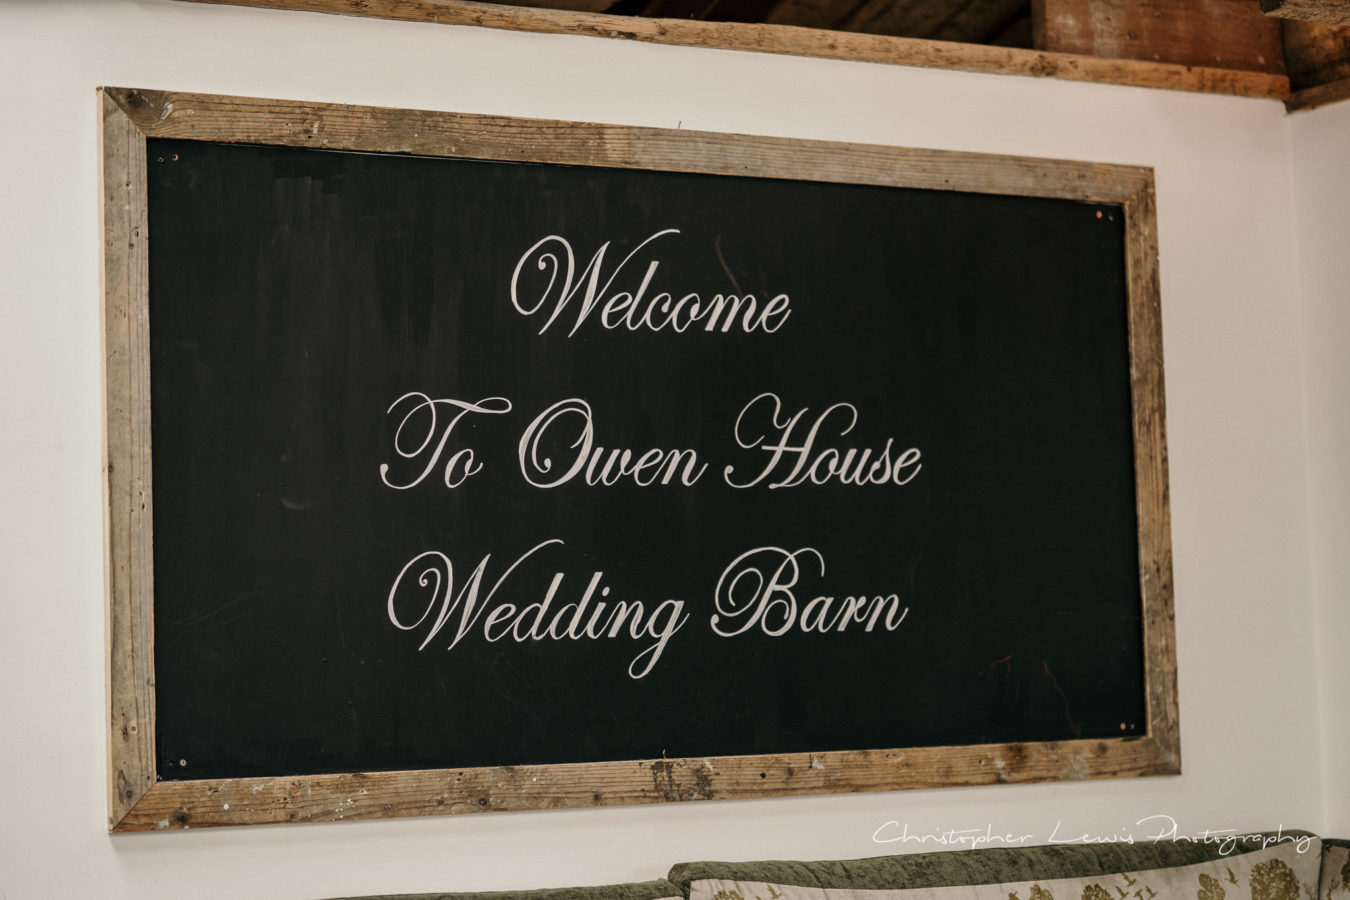 Owen-House-Wedding-Barn-67